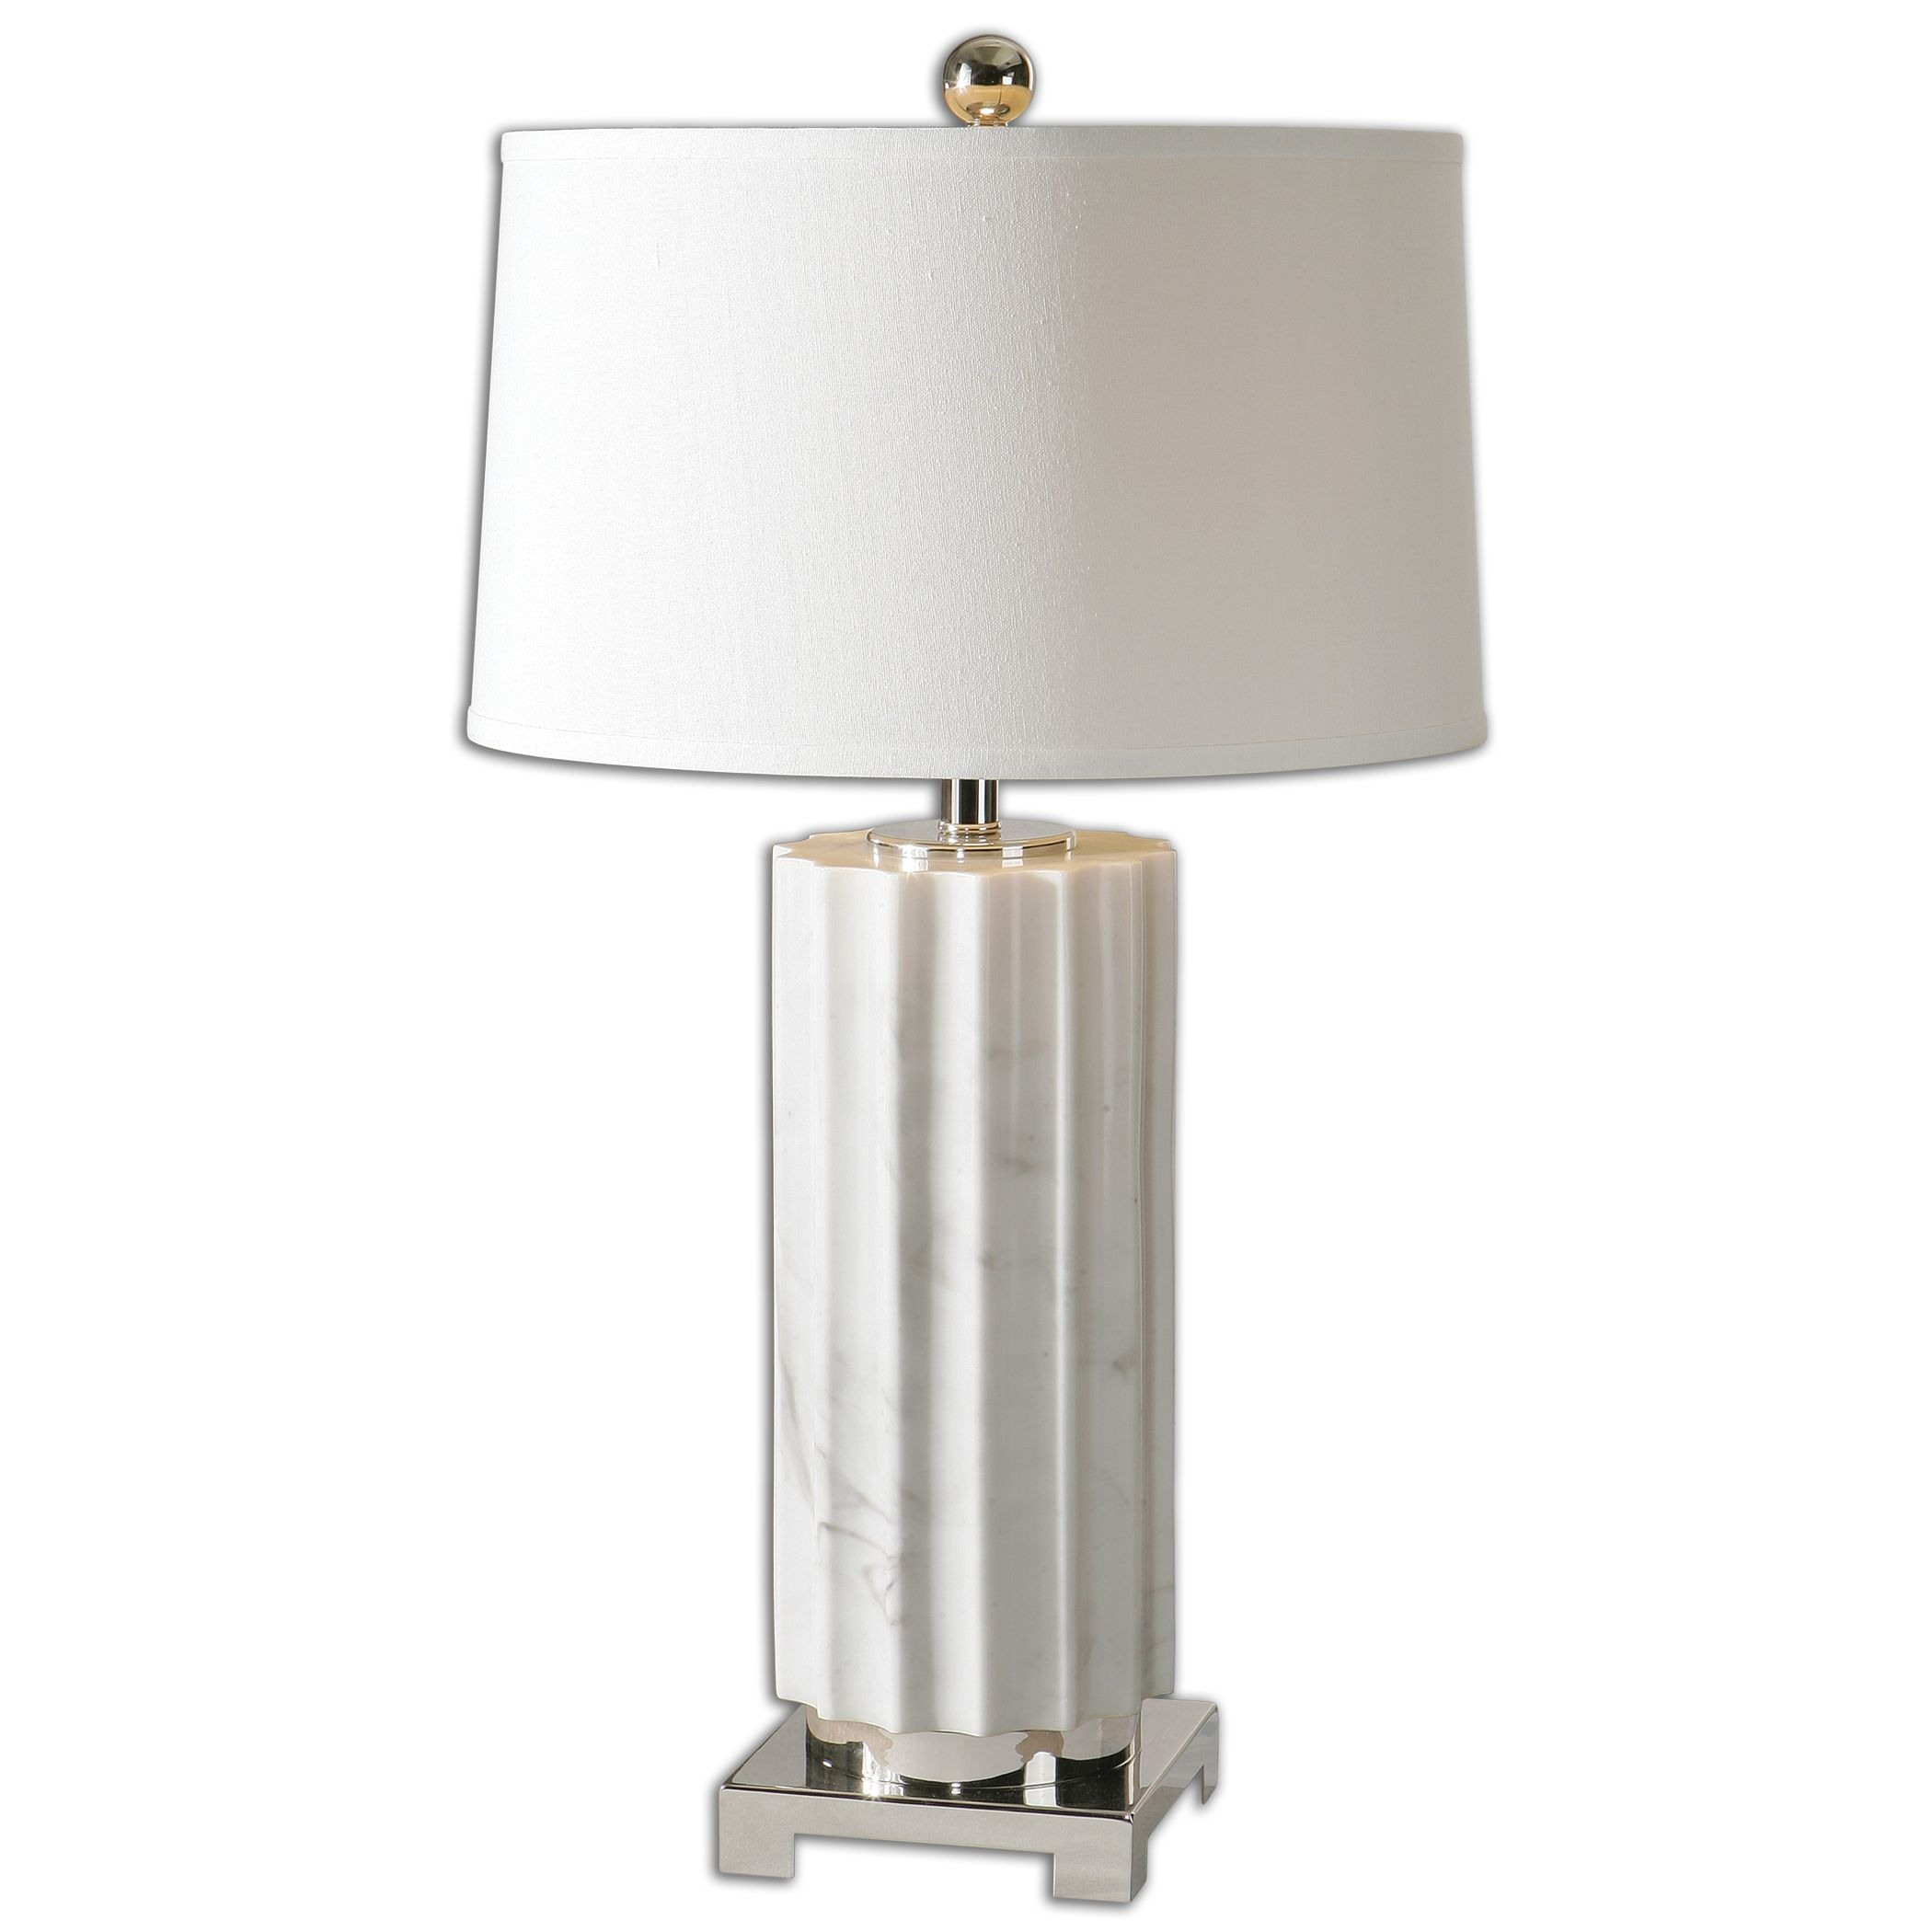 Uttermost-27911-1-Castorano - 1 Light Table Lamp  Polished Nickel Finish with White Linen Fabric Shade